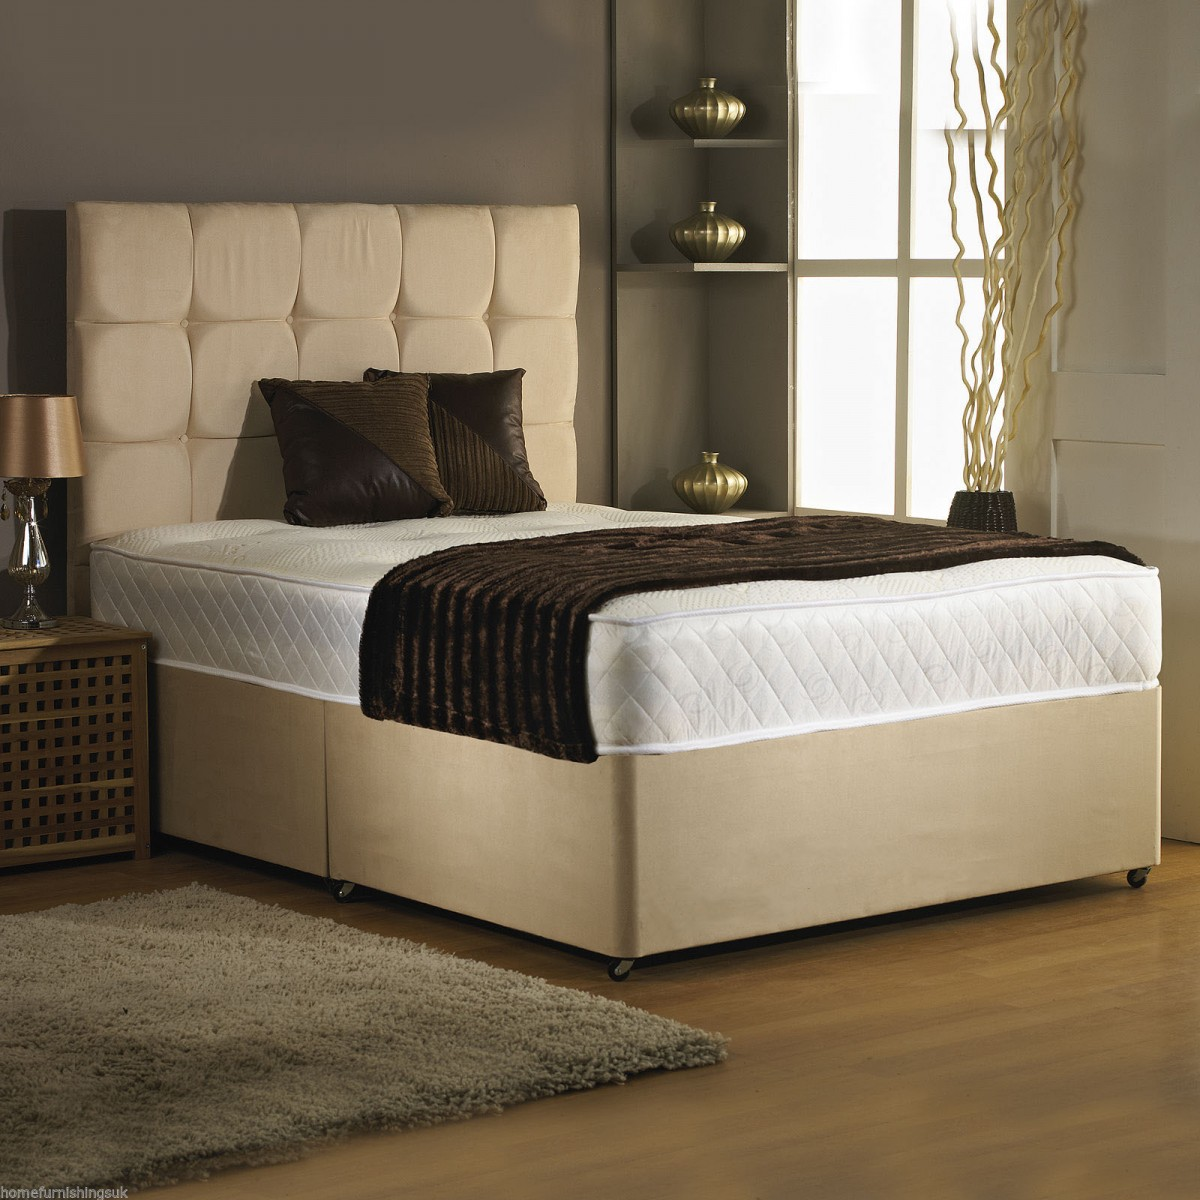 4ft small double divan bed base only in stone colour suede for Small double divan bed